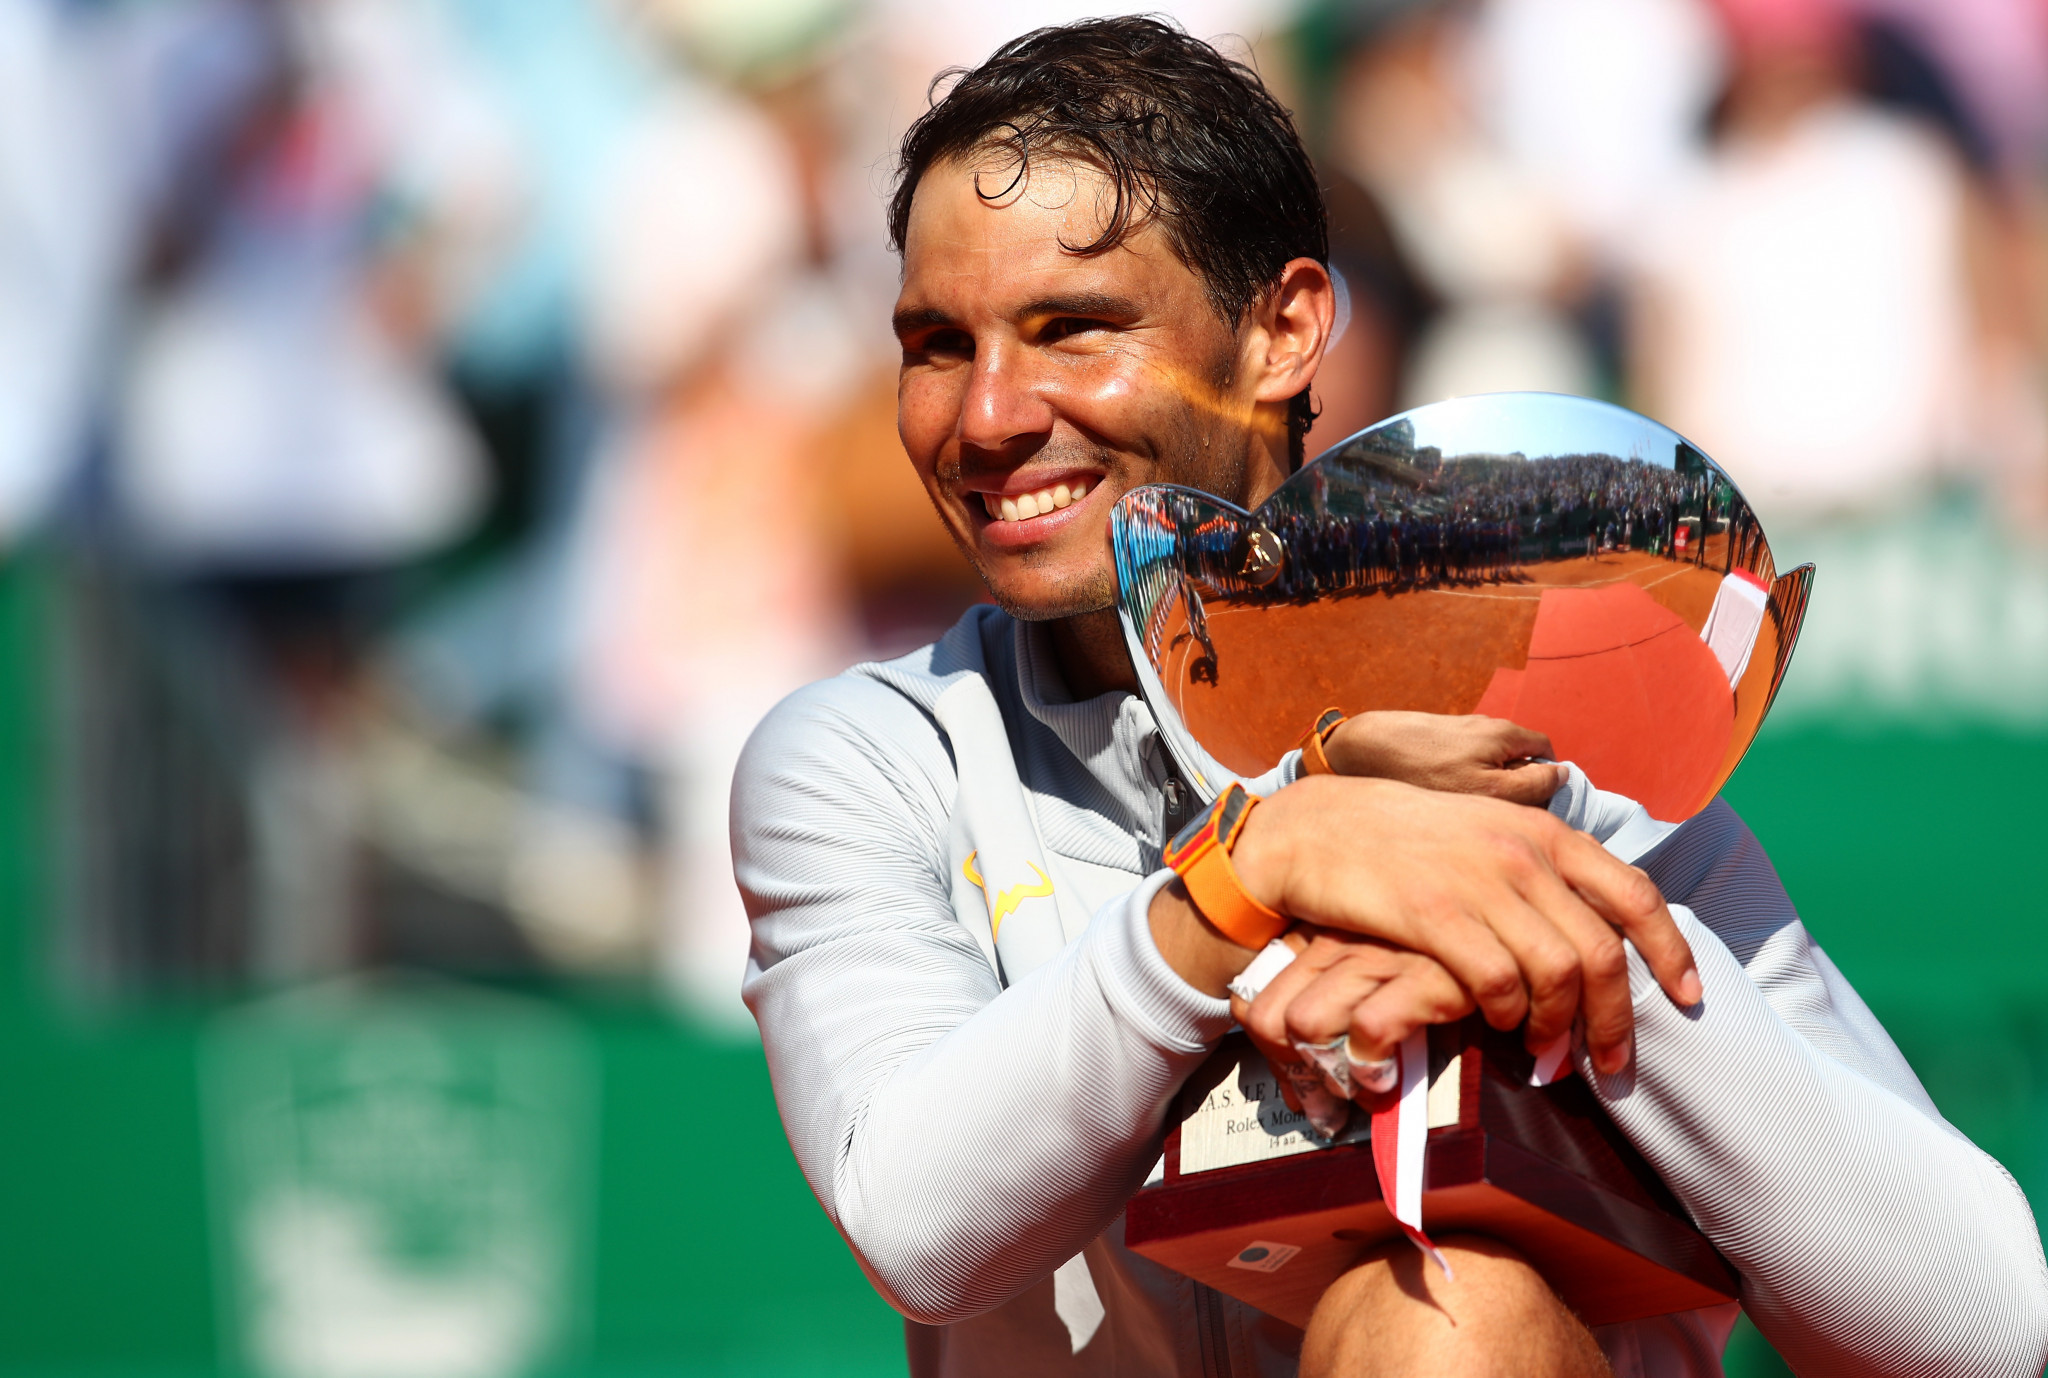 Nadal remains world number one after beating Nishikori in Monte Carlo Masters final